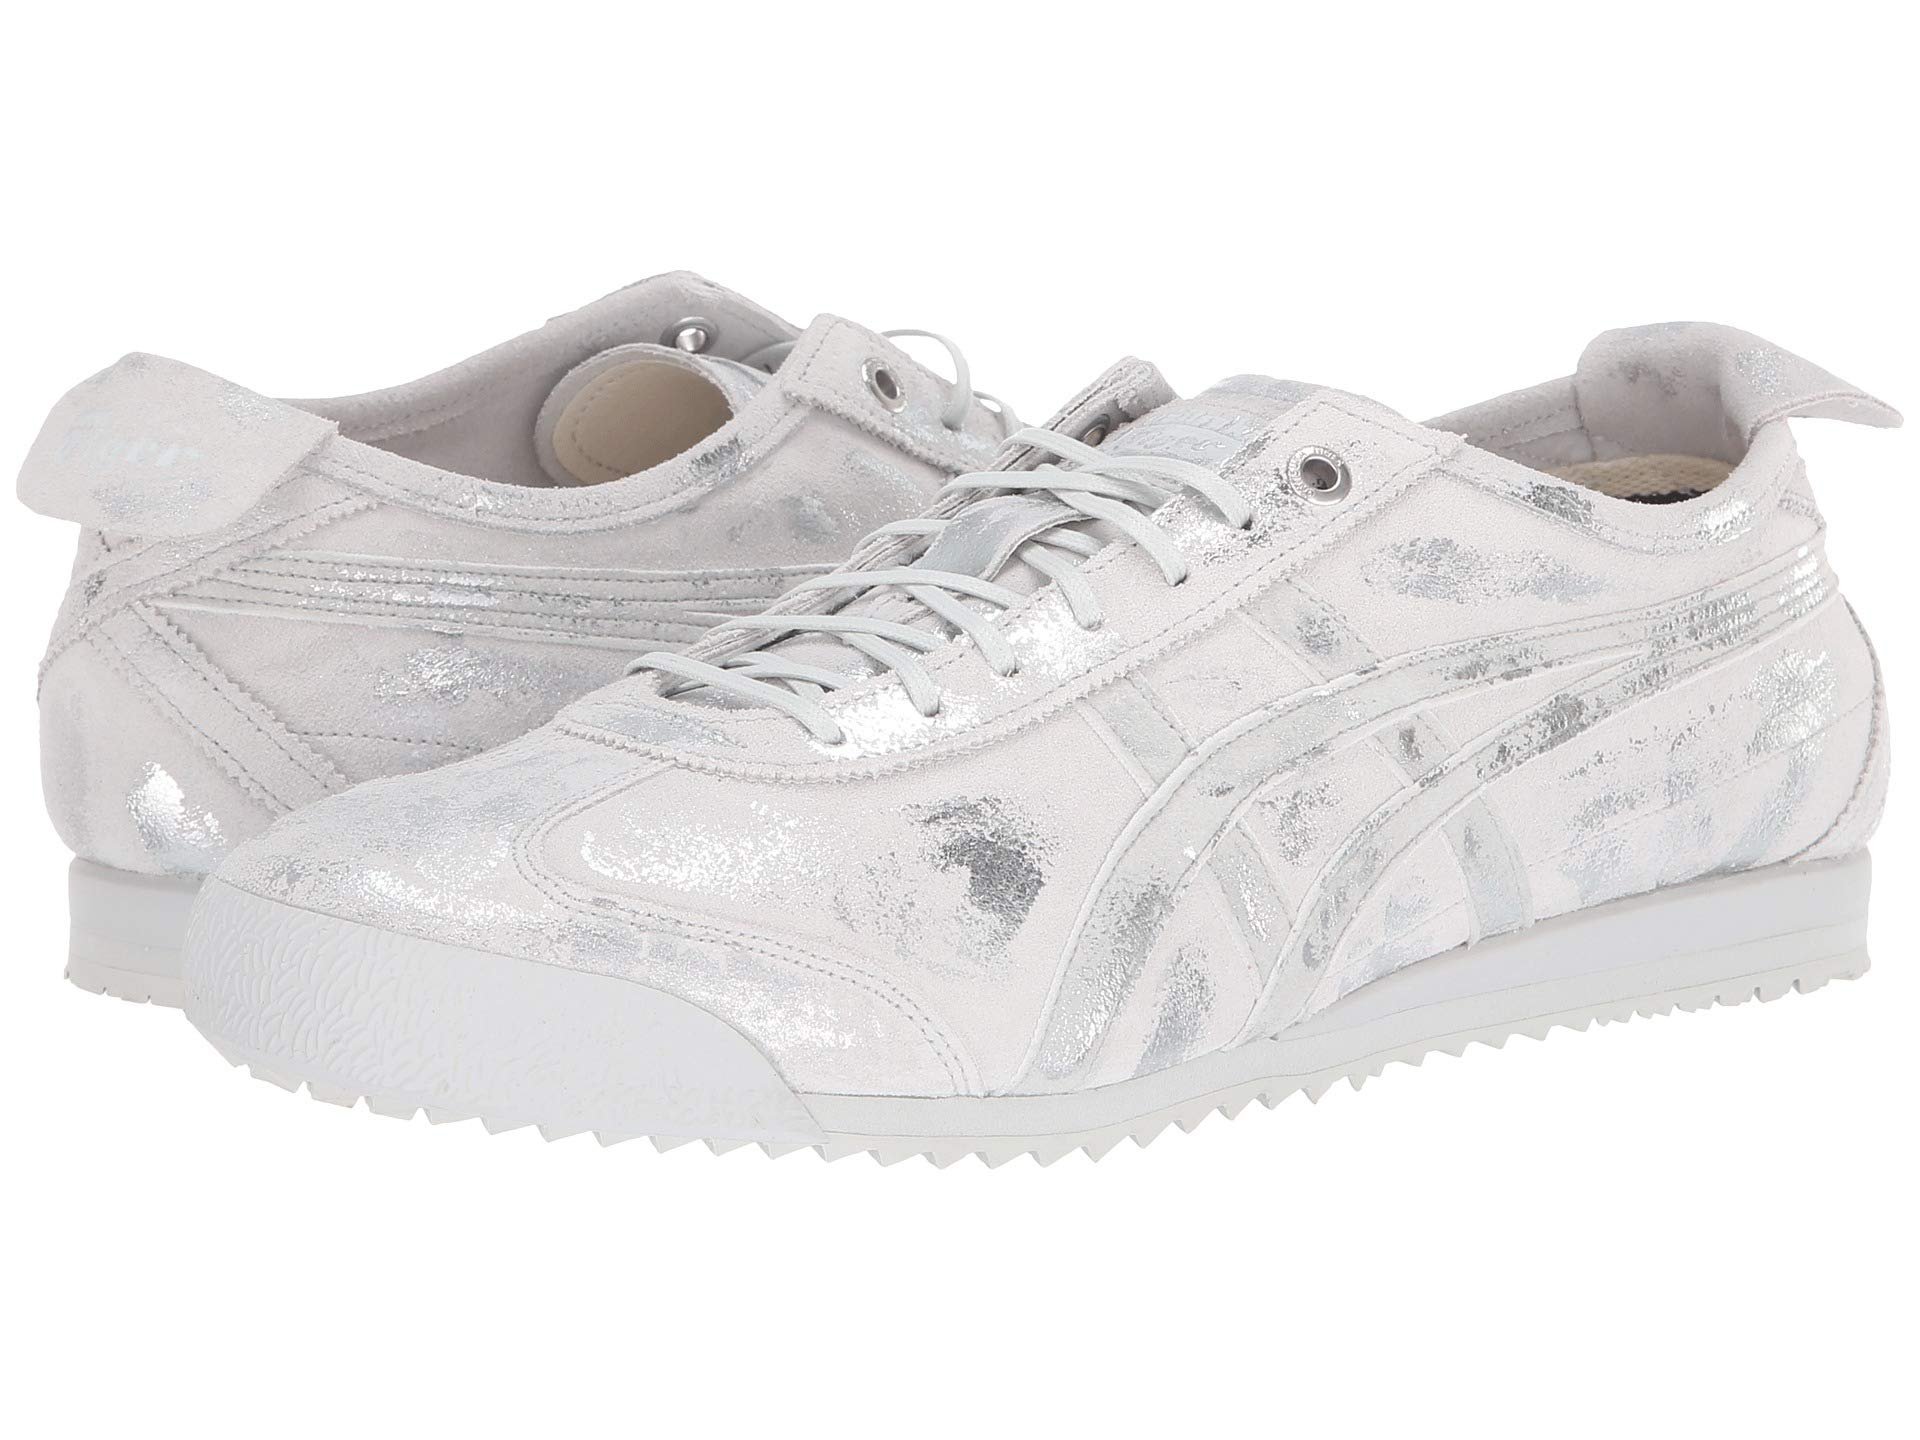 new concept d23af c9bde Кроссовки Onitsuka Tiger by Asics Mexico 66® SD Silver, 47 (300 мм)  (10103342)